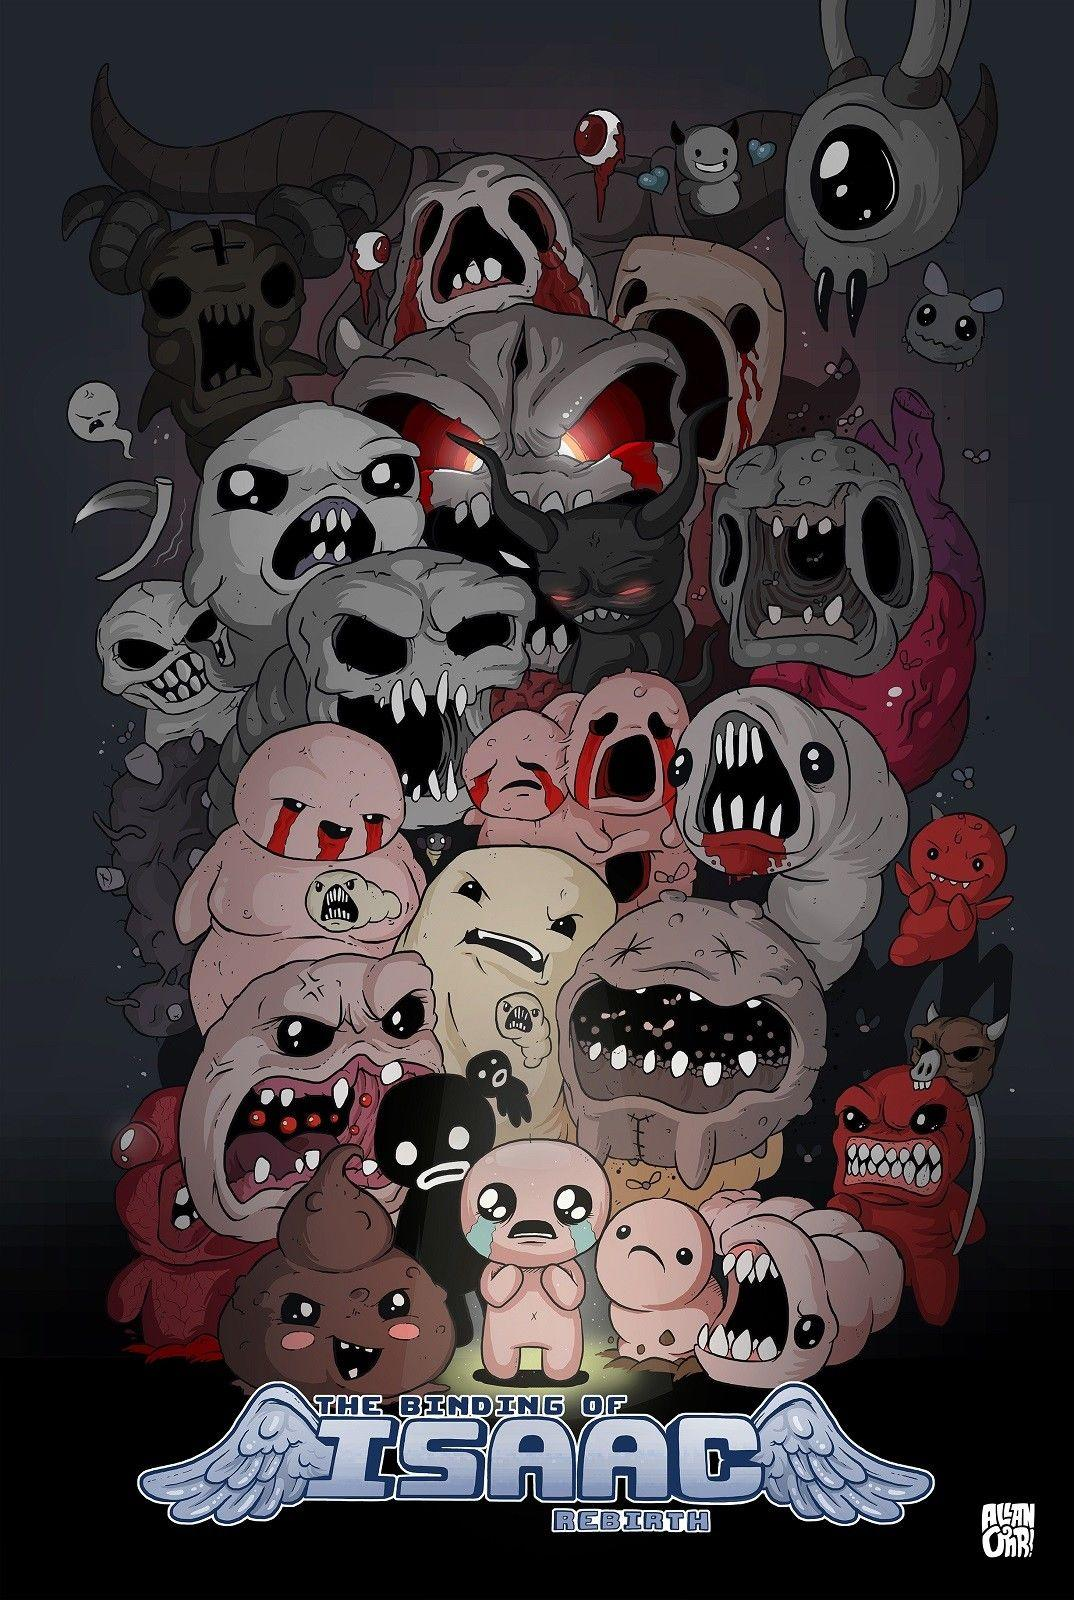 b7147a27fec6 The Binding Of Isaac Video Game Decor Art Silk Print Poster 24x36inch  24x43inch Wall Decals And Stickers Wall Decals Art From Wangzhi hao8